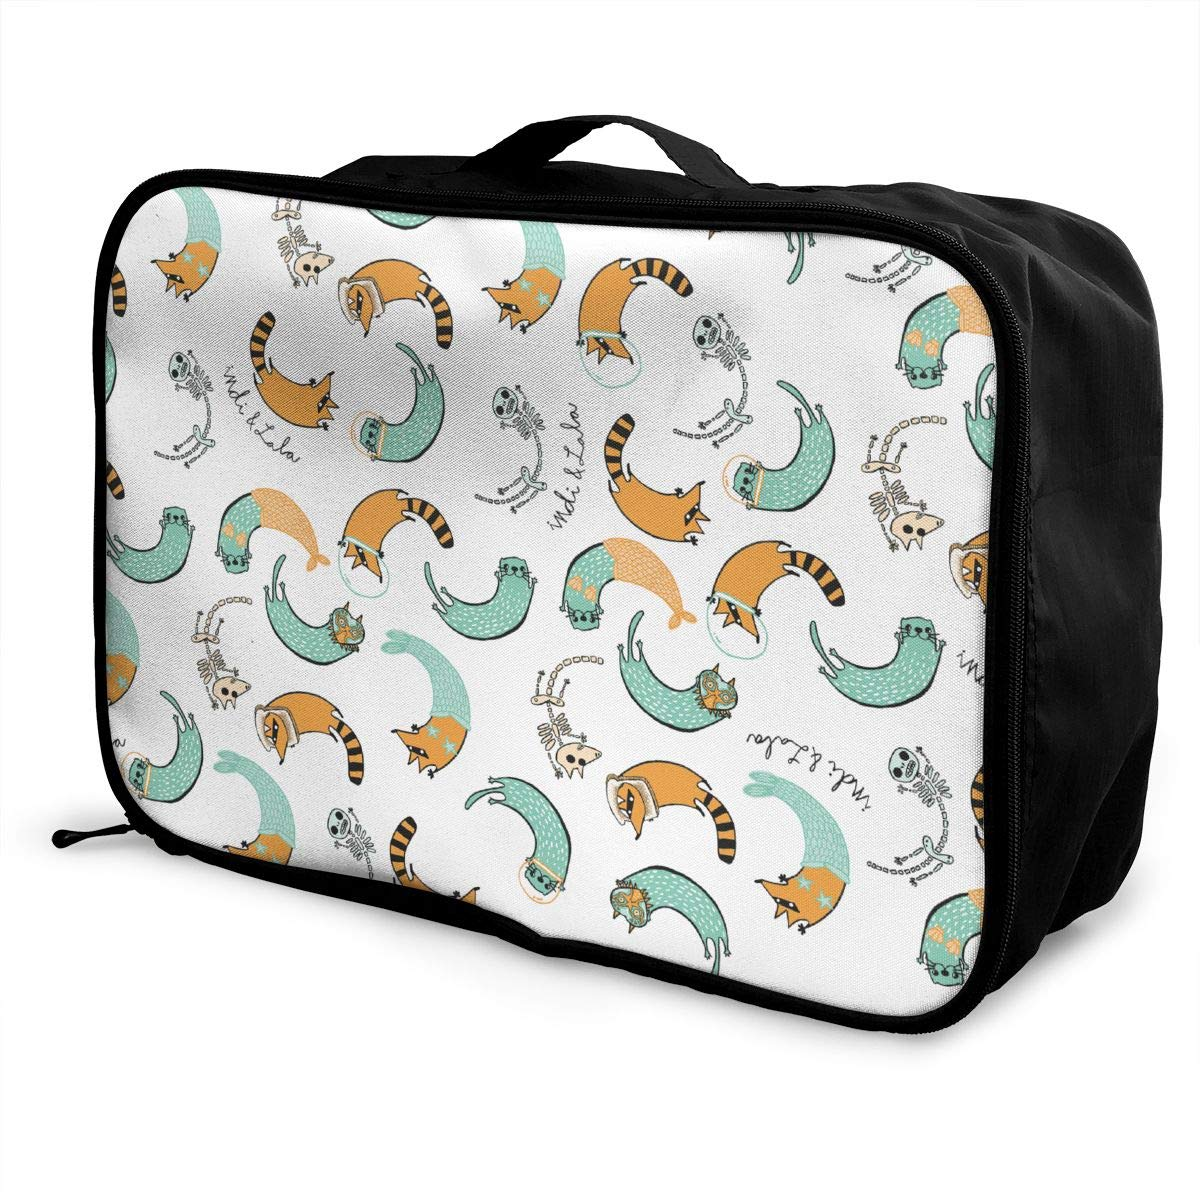 YueLJB Otter Raccoon Lightweight Large Capacity Portable Luggage Bag Travel Duffel Bag Storage Carry Luggage Duffle Tote Bag